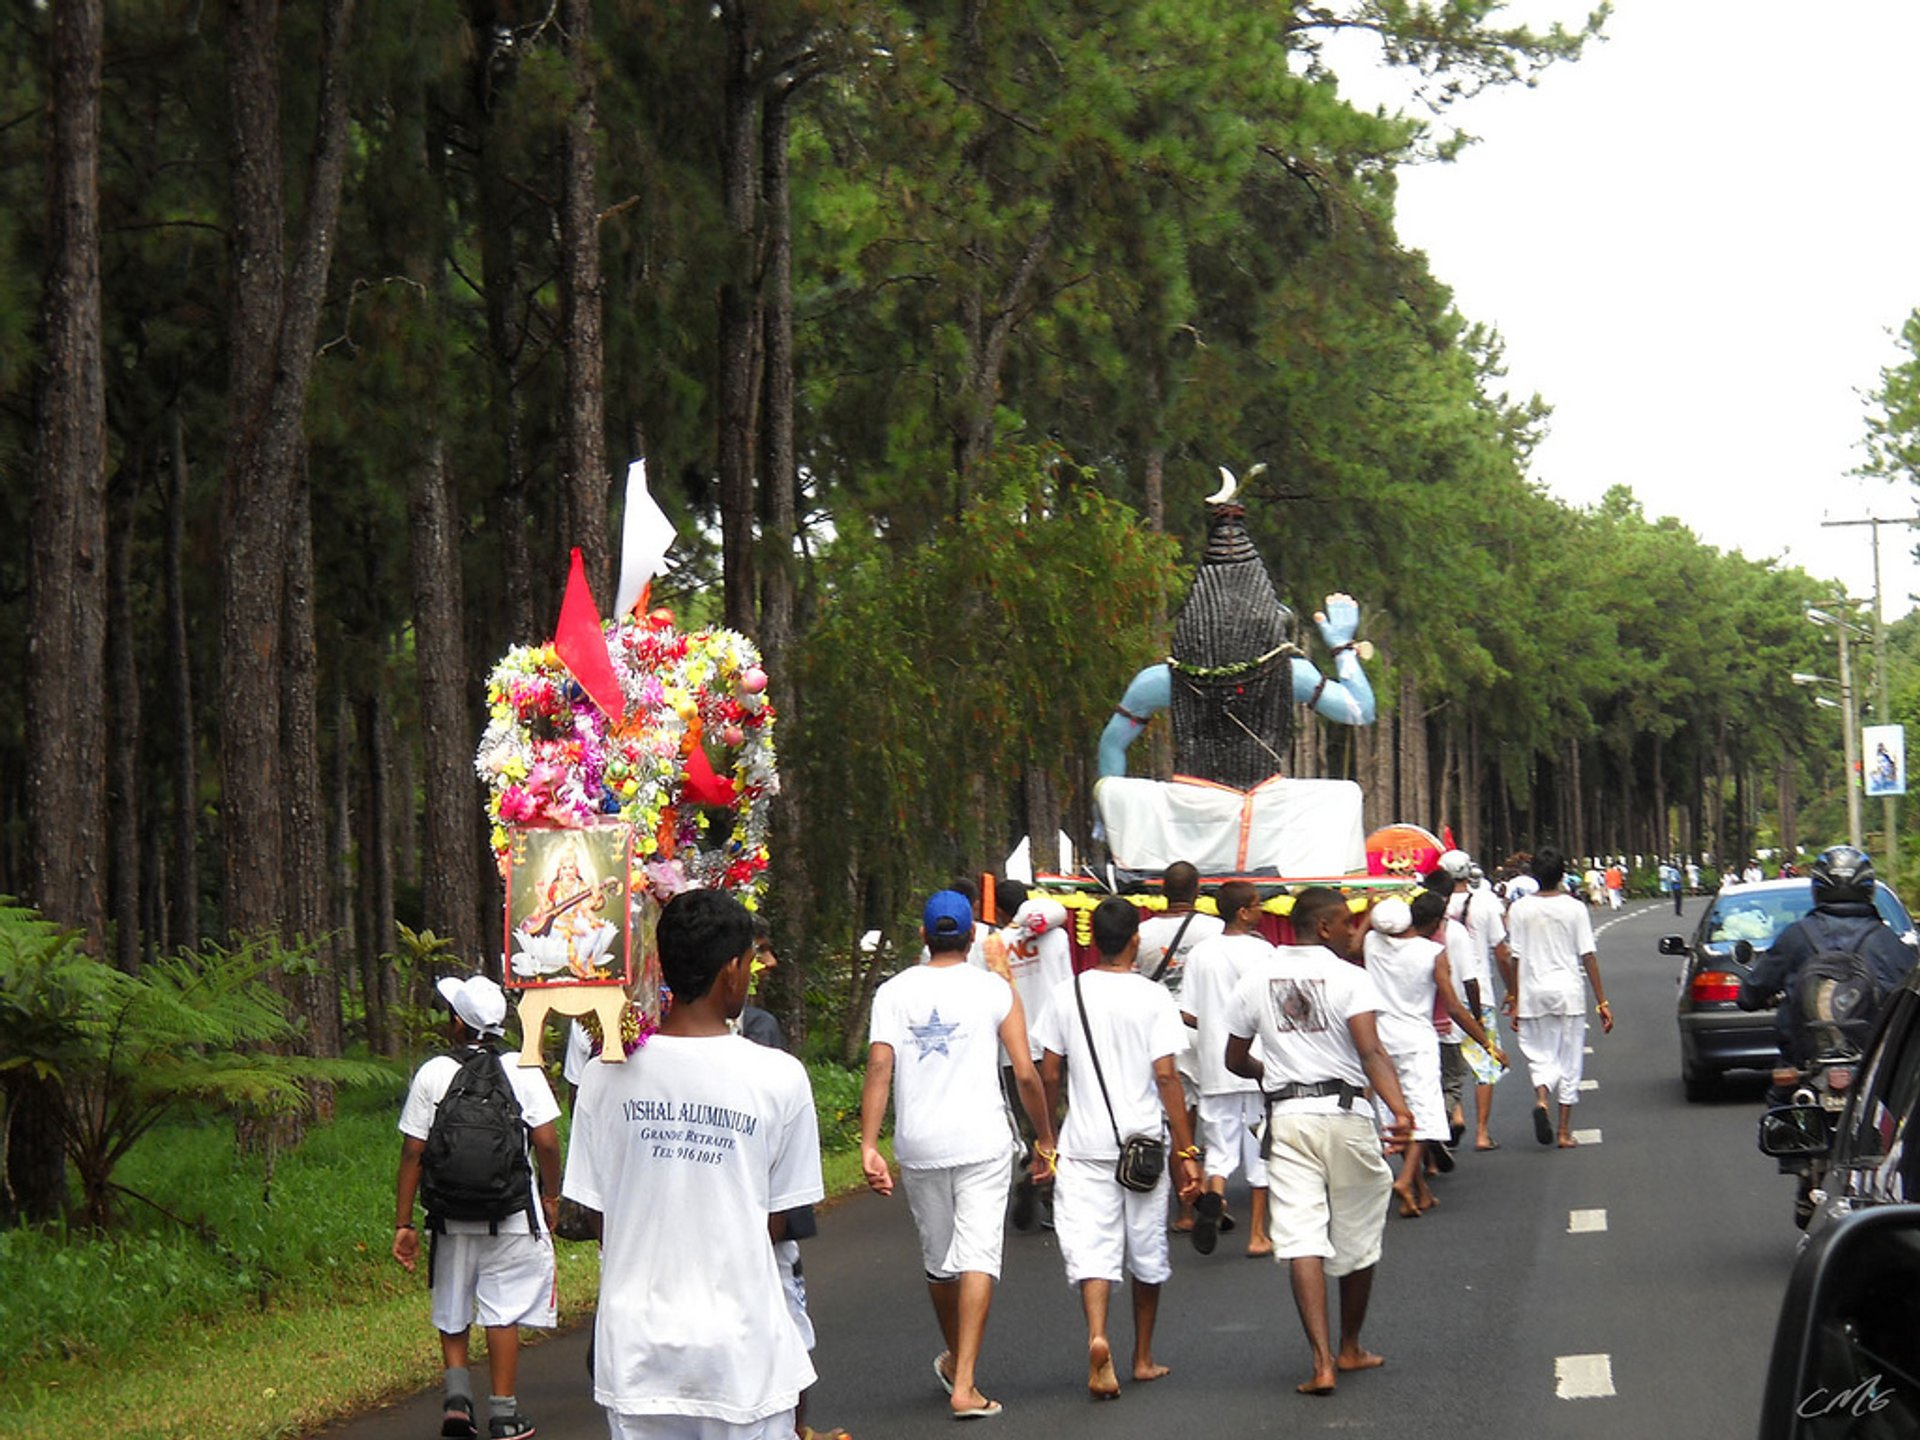 Best time for Maha Shivaratree Celebration in Mauritius 2019